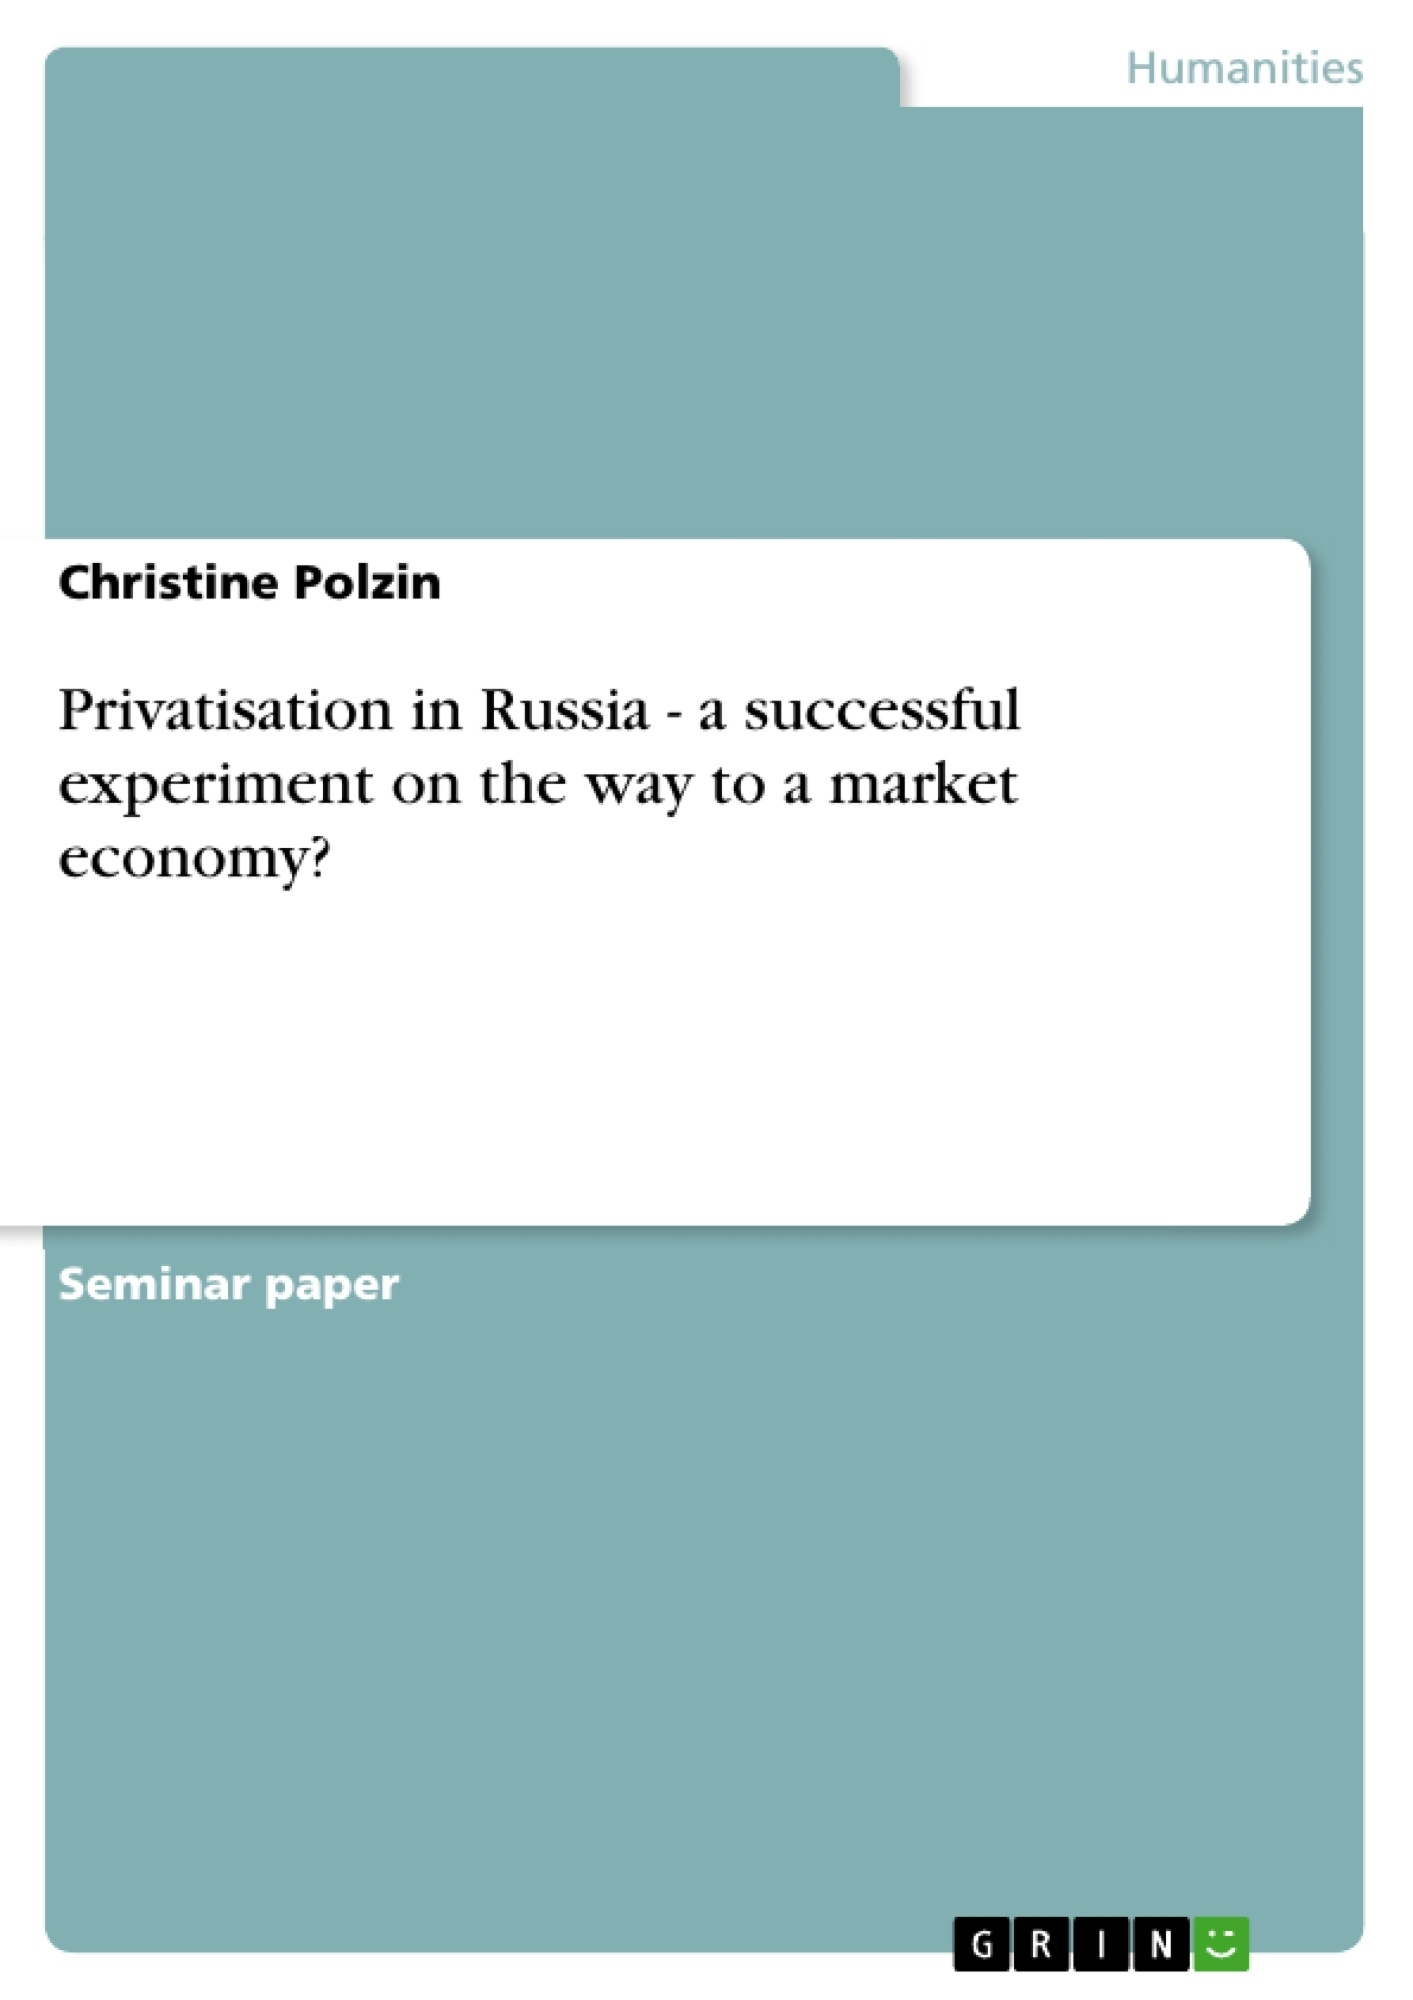 Title: Privatisation in Russia - a successful experiment on the way to a market economy?